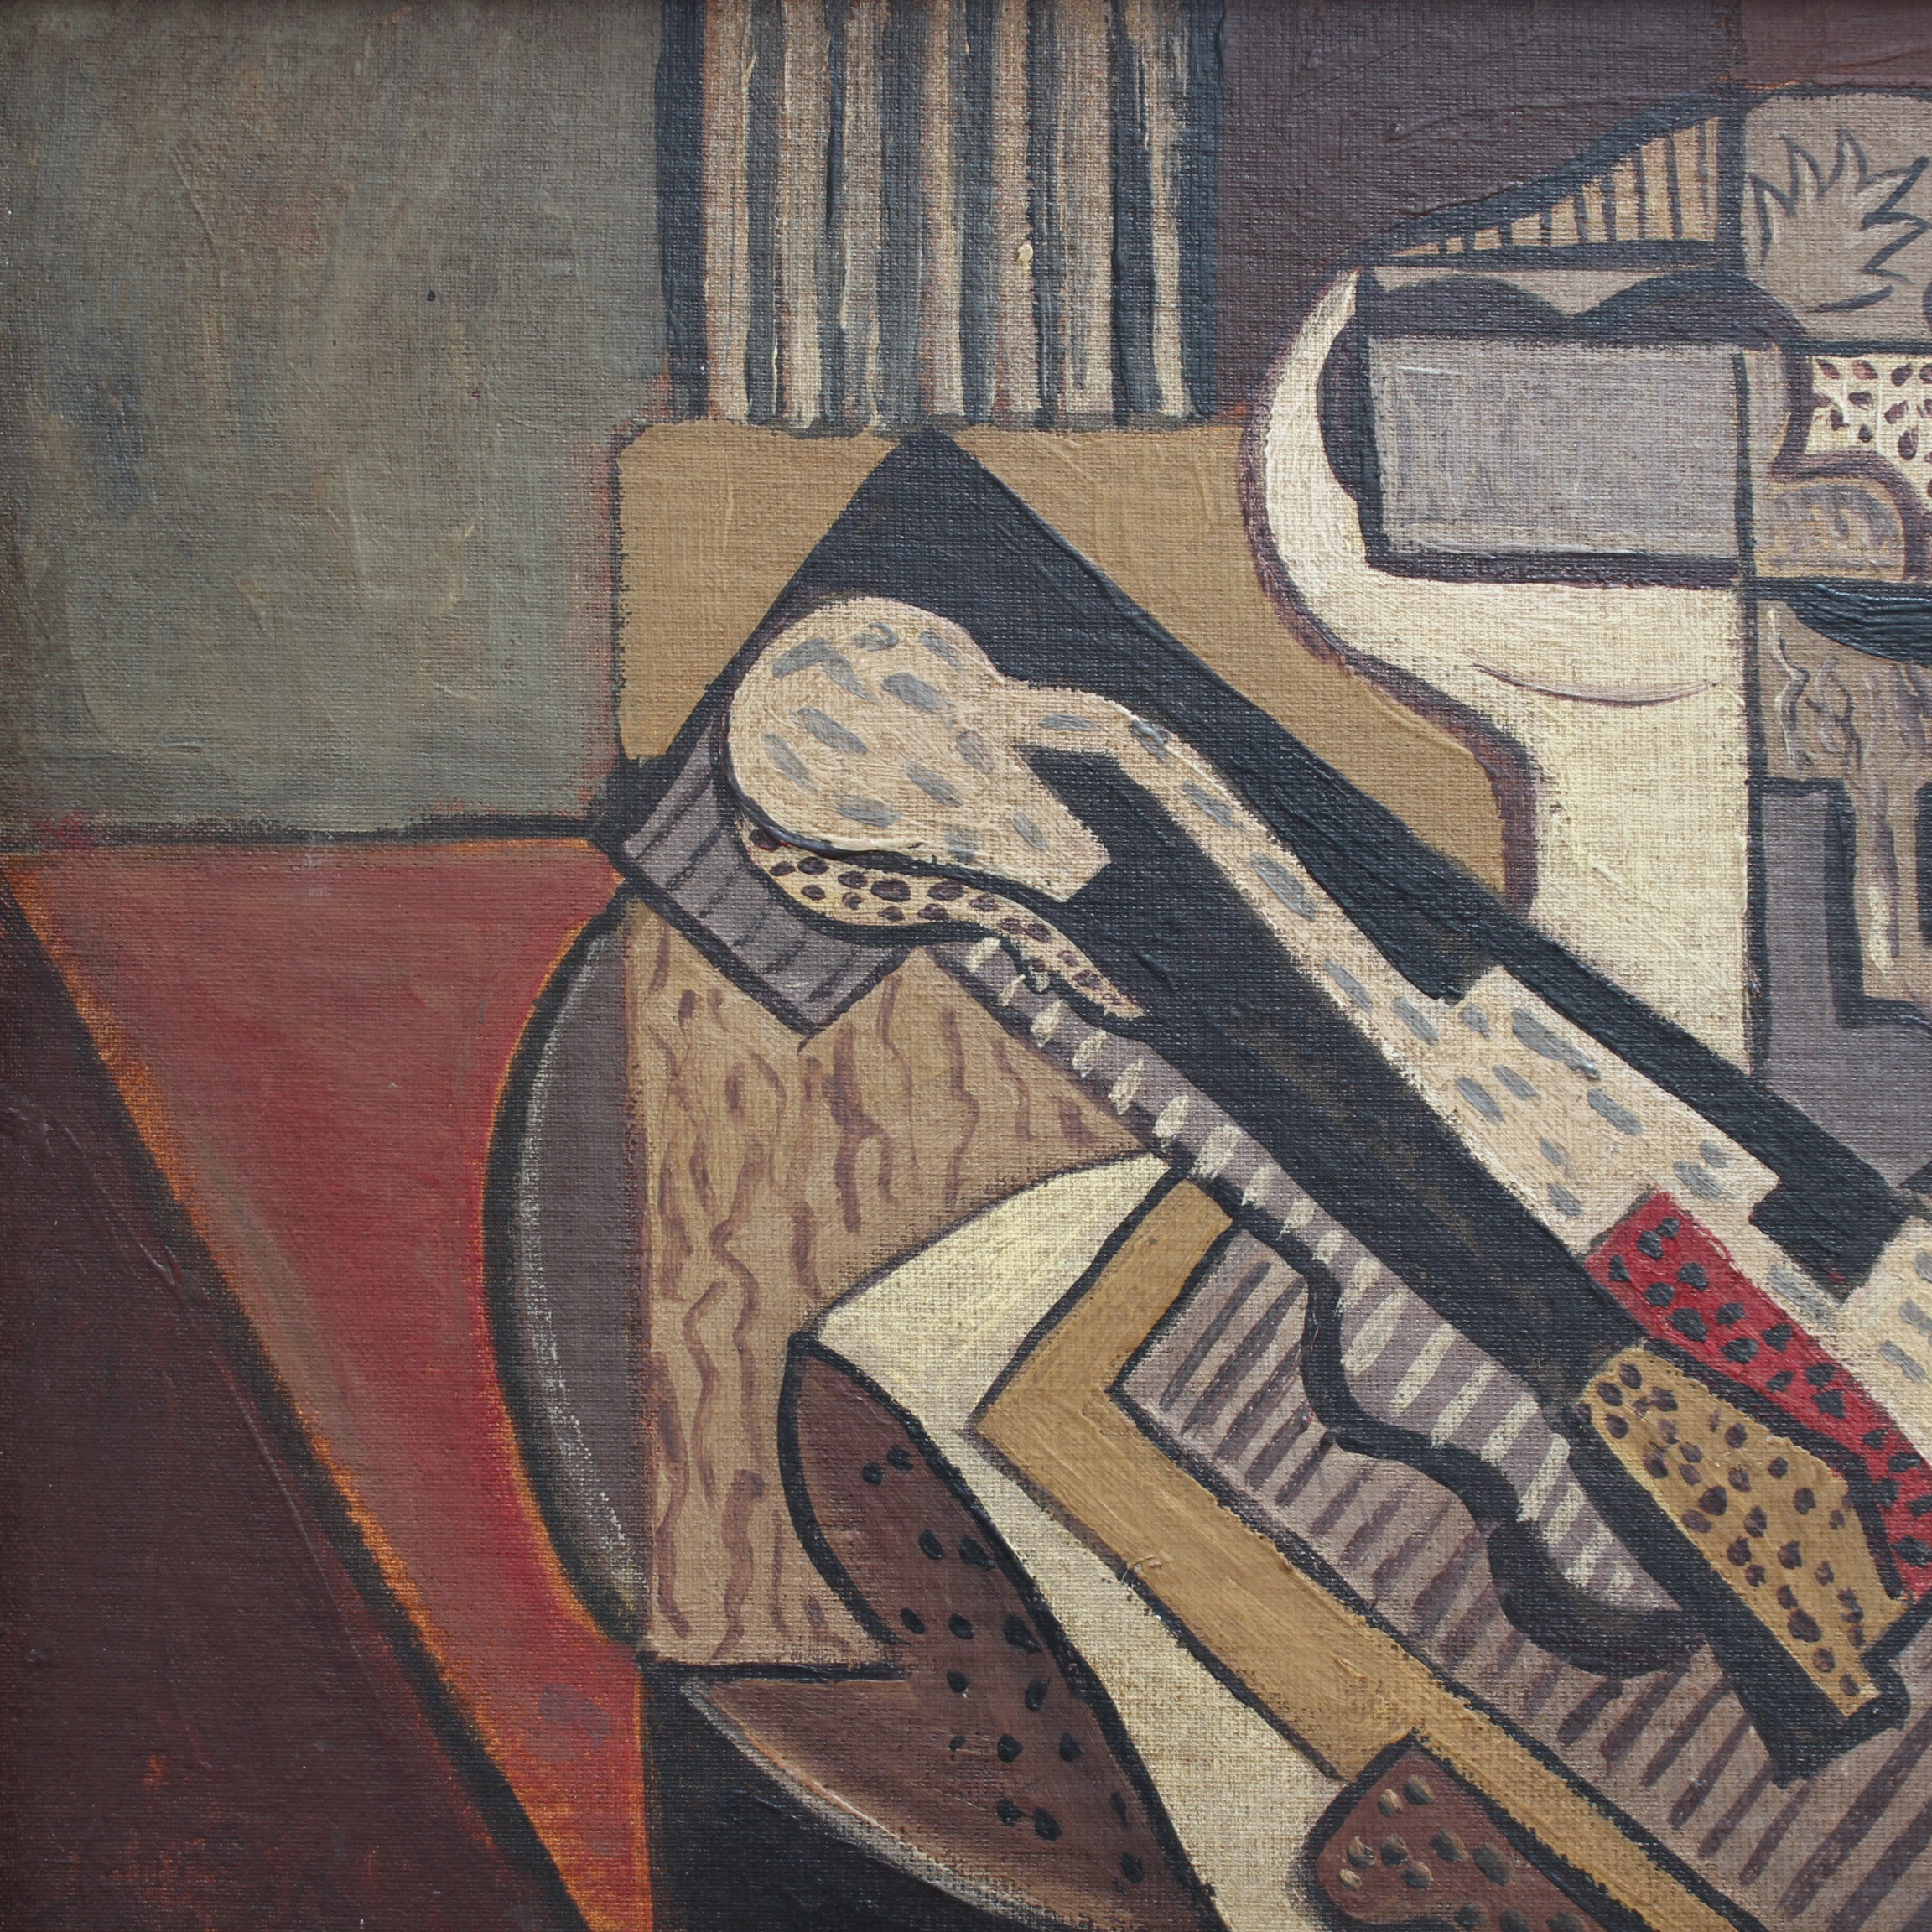 'Cubist Still Life on Table' by Unknown (c. 1950s)